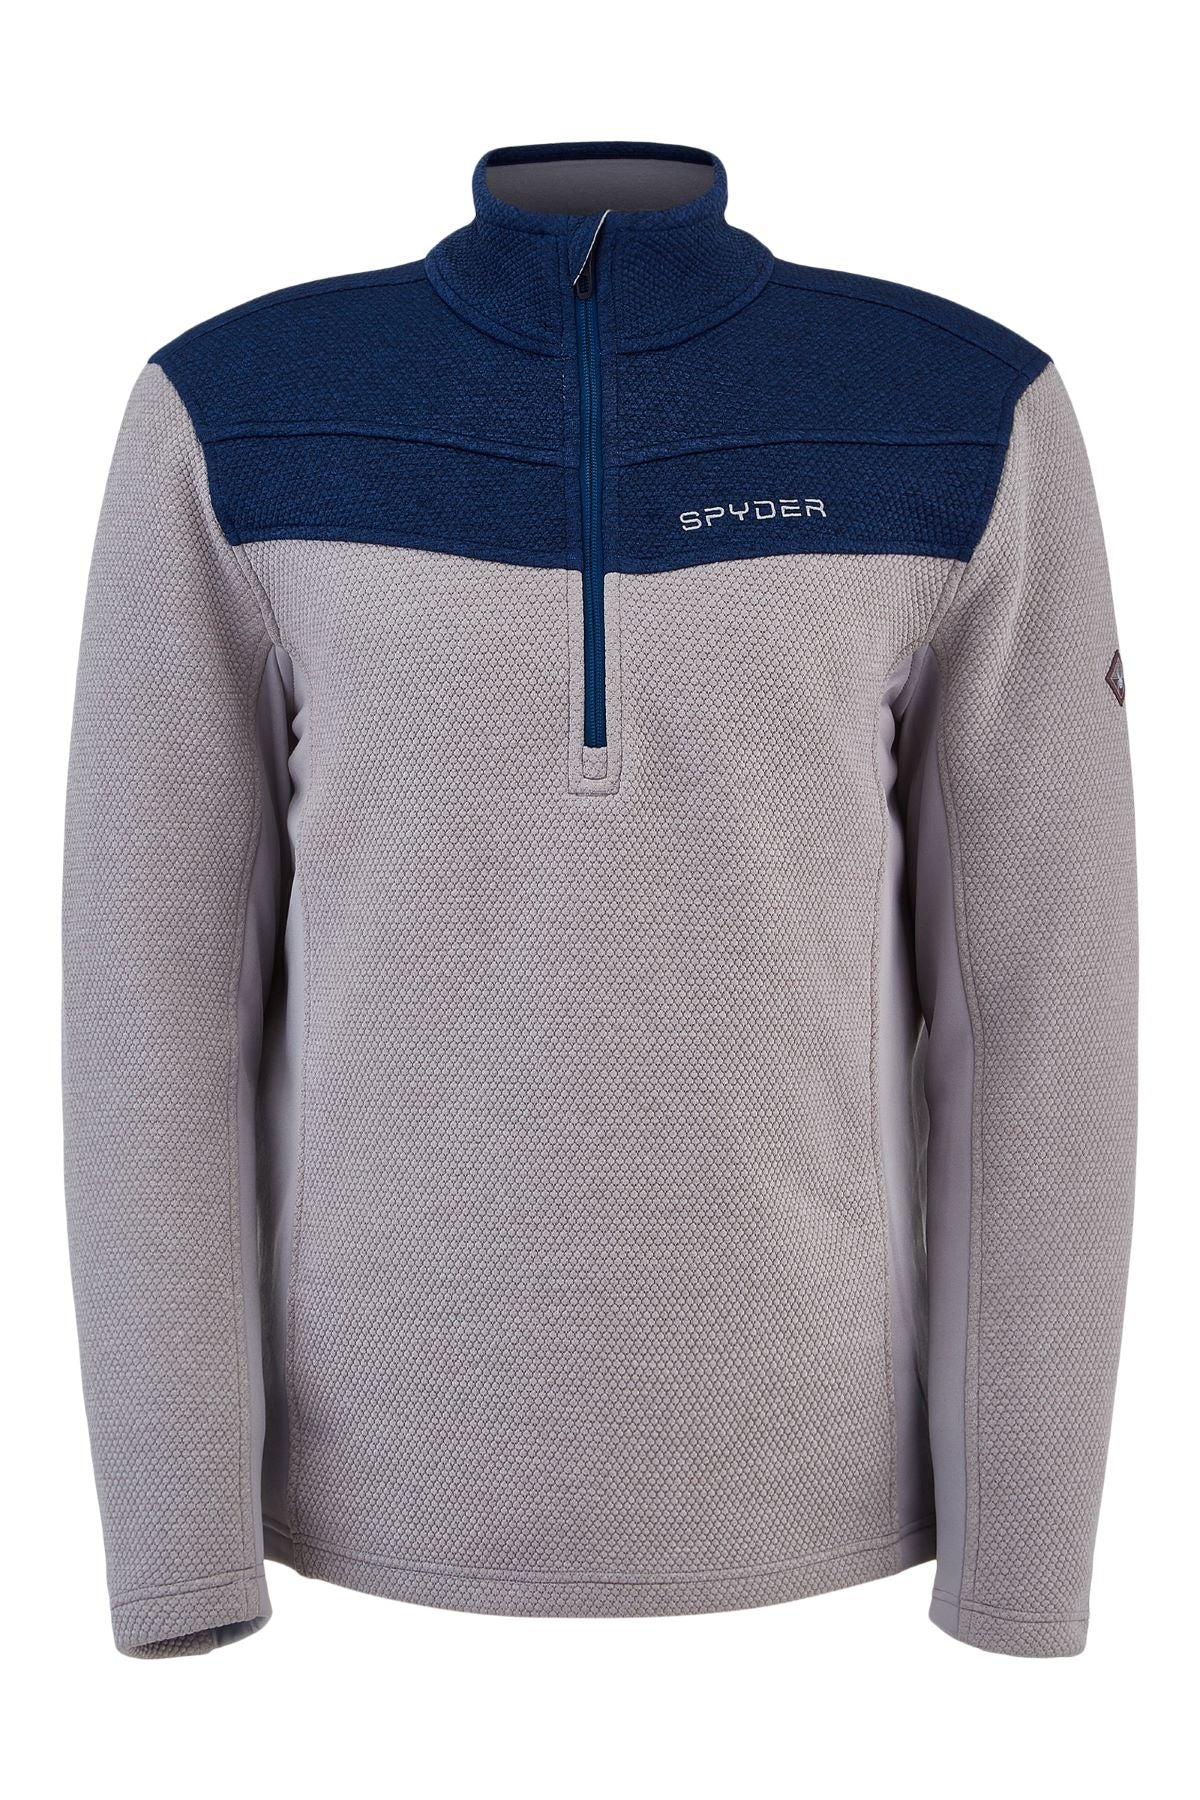 'Spyder' Men's Encore 1/2 Zip Fleece - Alloy Abyss